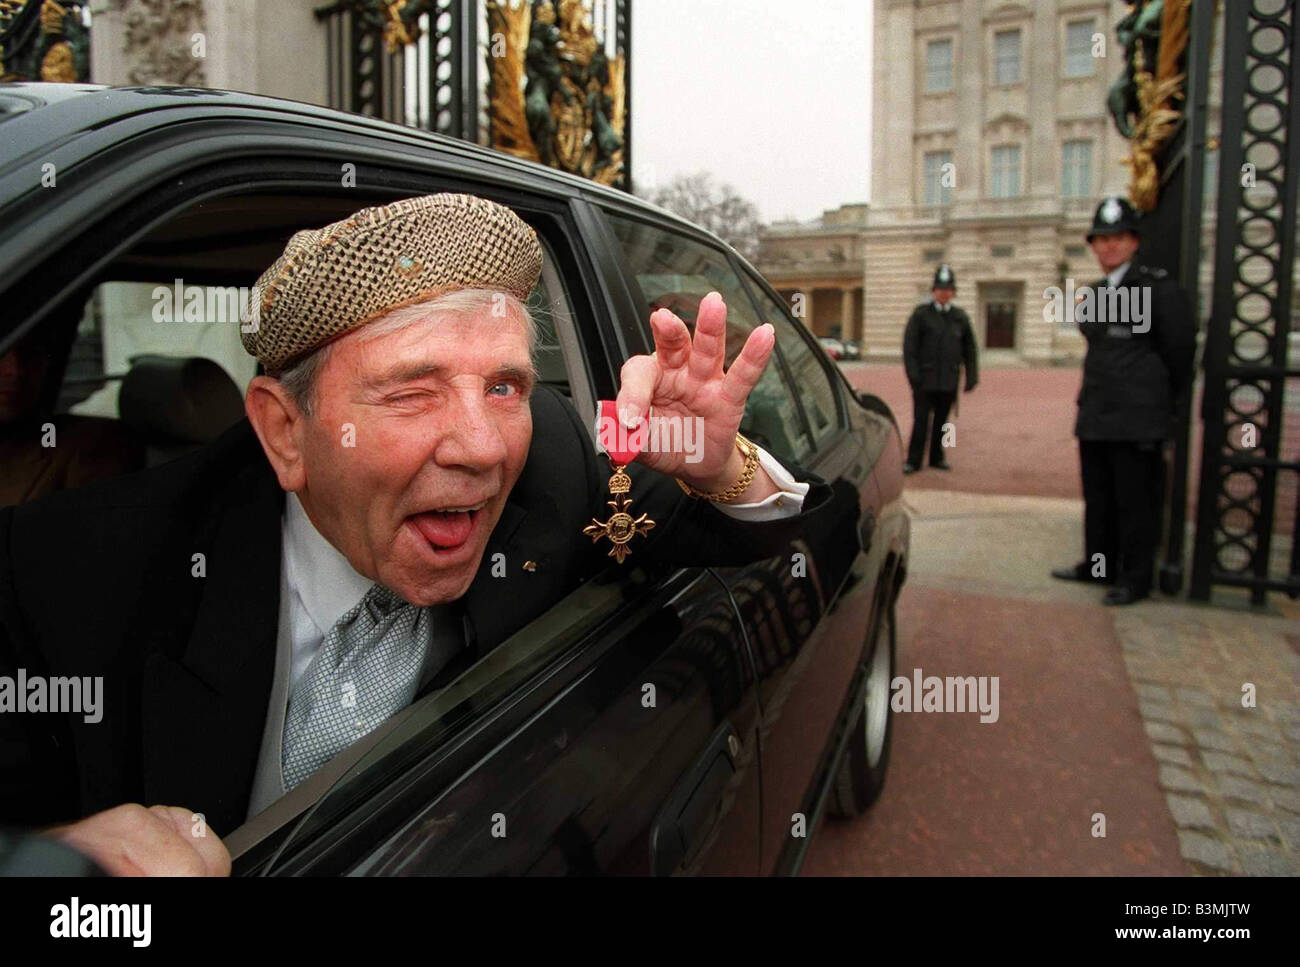 Norman Wisdom leaves Buckingham Palace with his OBE 4th February Norman Wisdom retires on his 90th birthday to spend - Stock Image